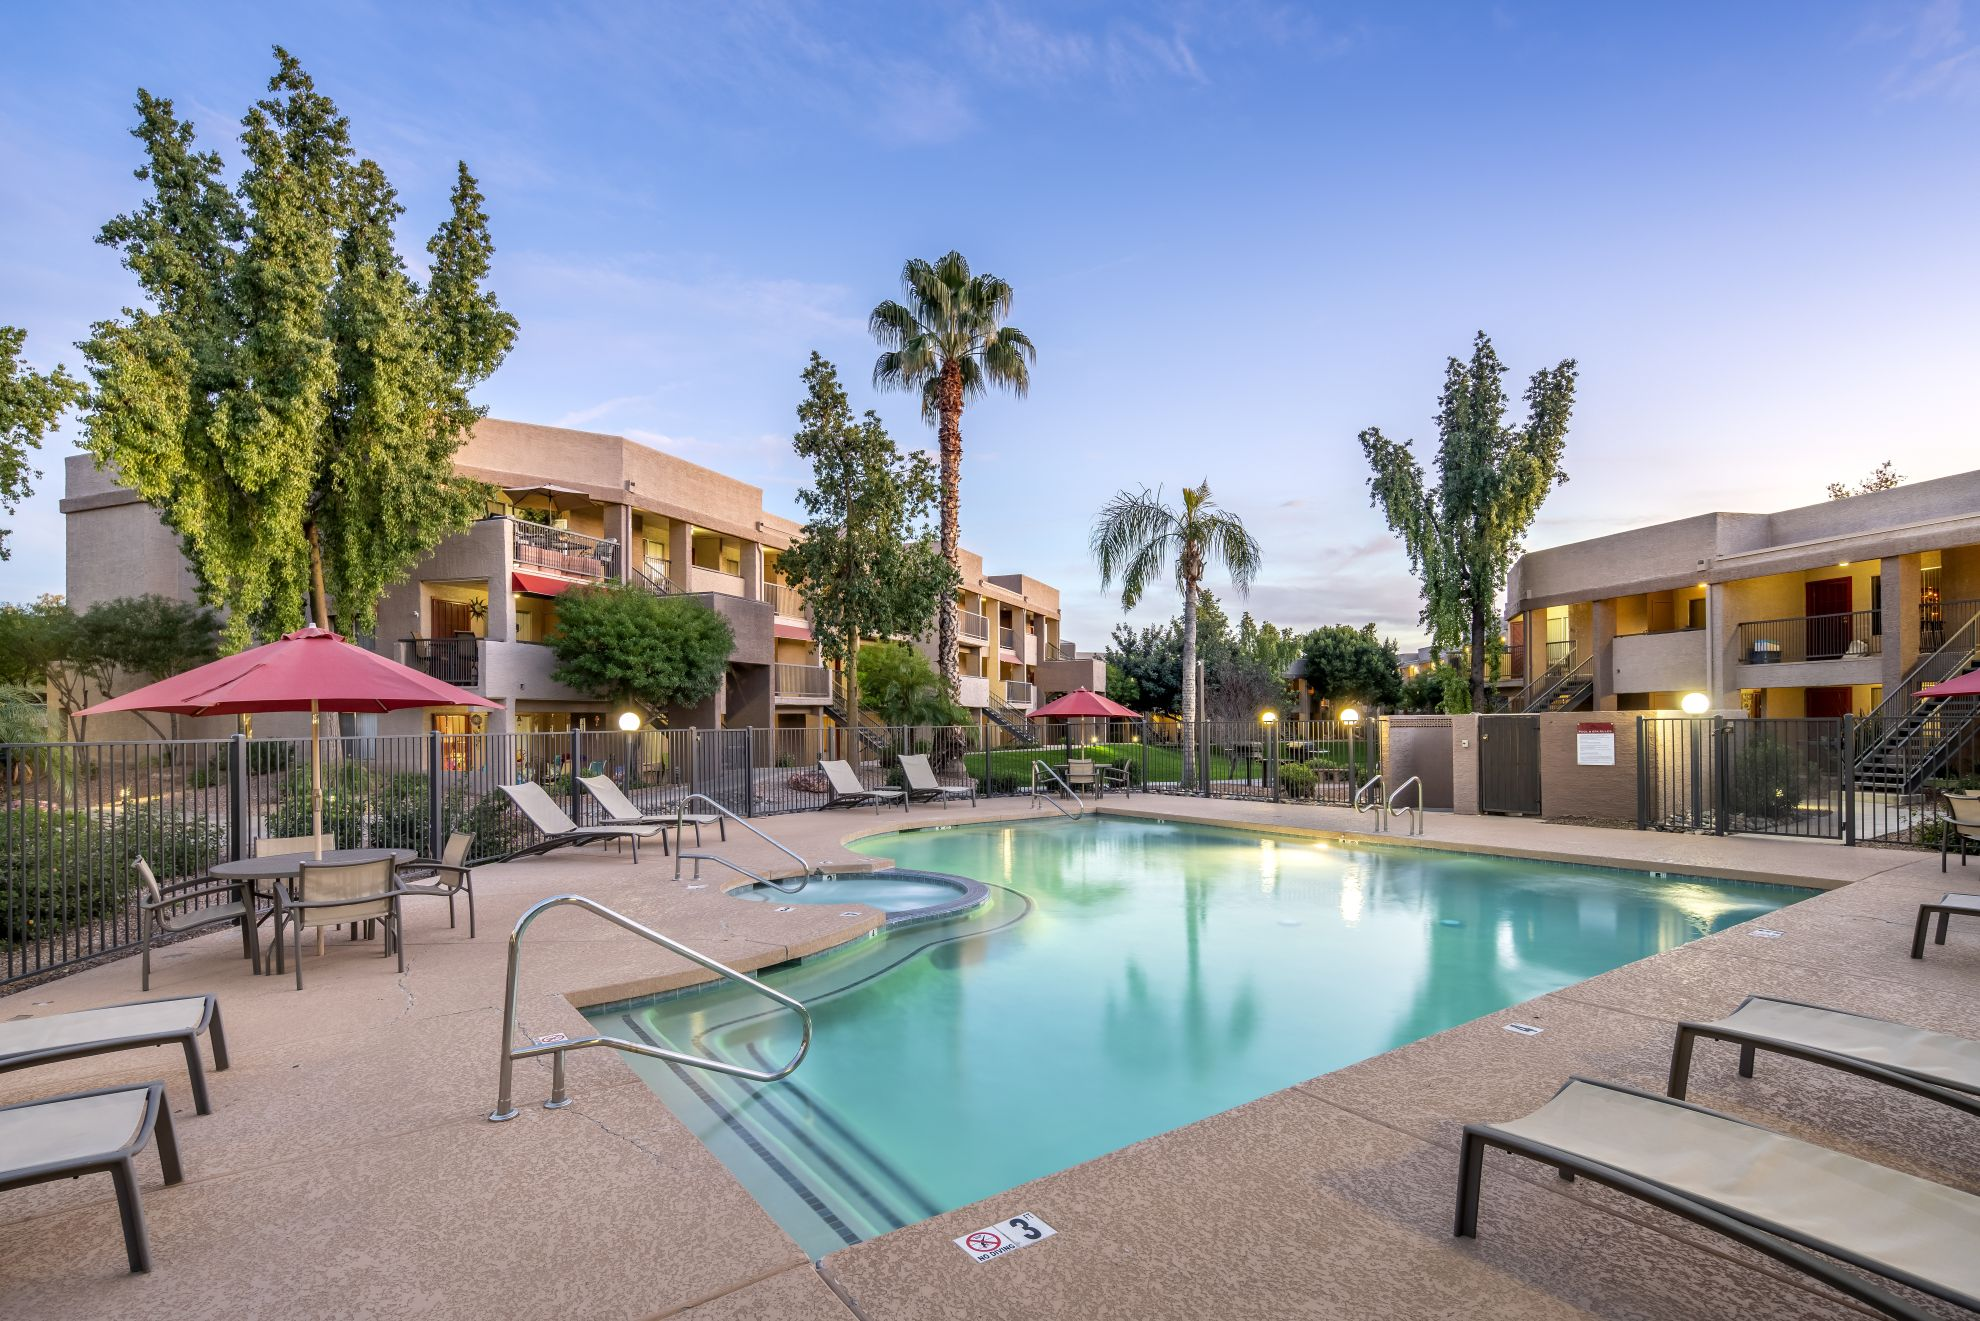 The Eagle Crest apartments in Glendale, Arizona, were built in 1987. (CoStar)